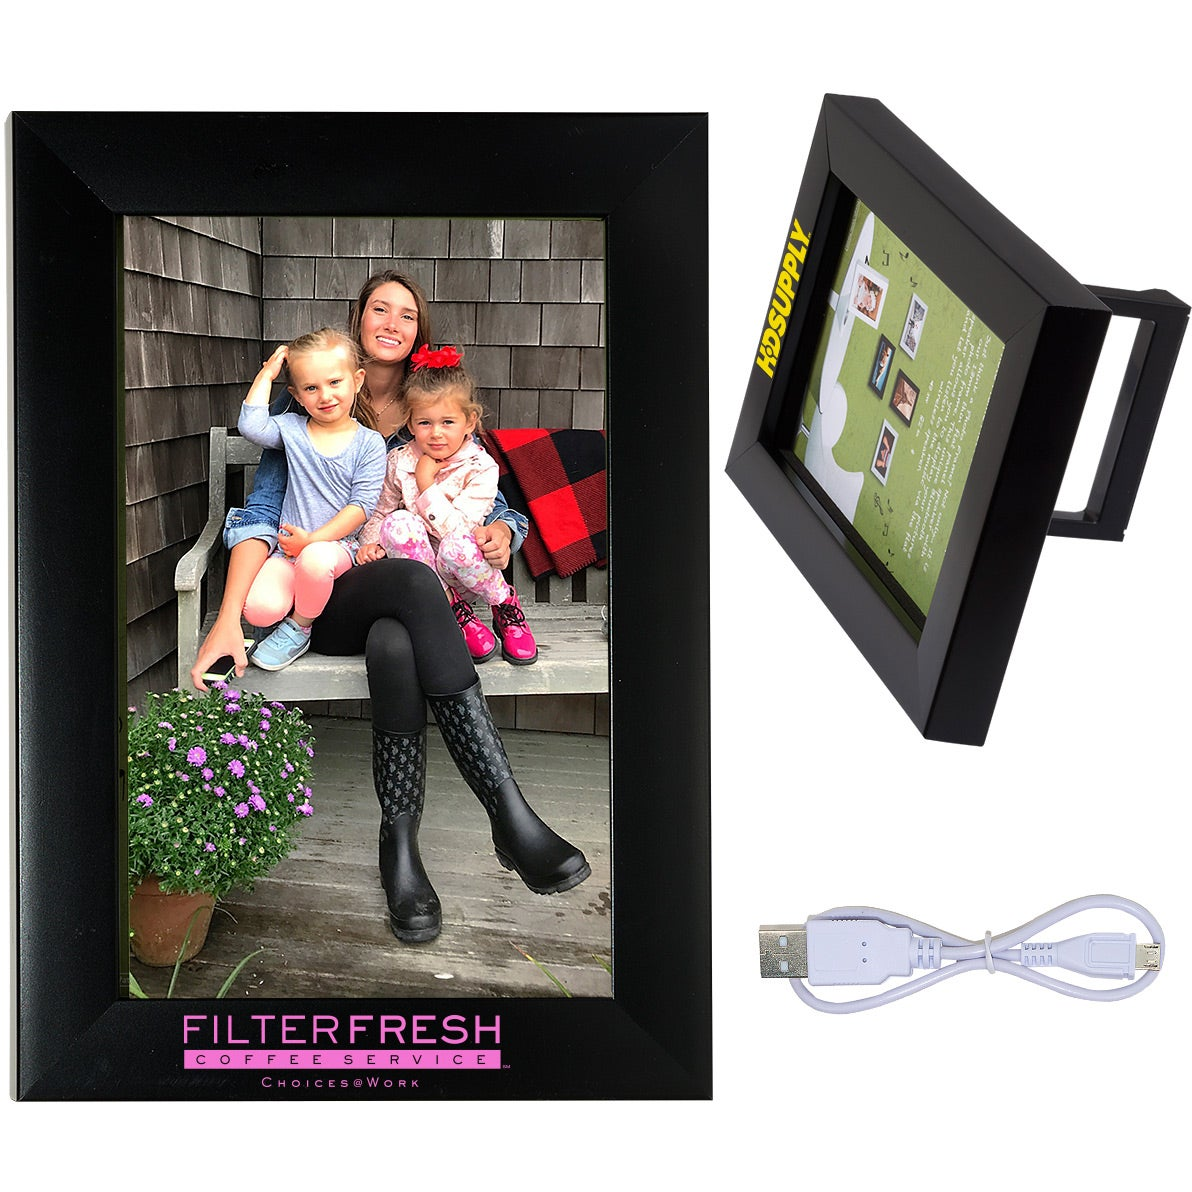 Promotional 4 X 6 Bluetooth Speaker And Frames With Custom Logo Circuitboardpictureframe4x6customjpg For 2639 Ea